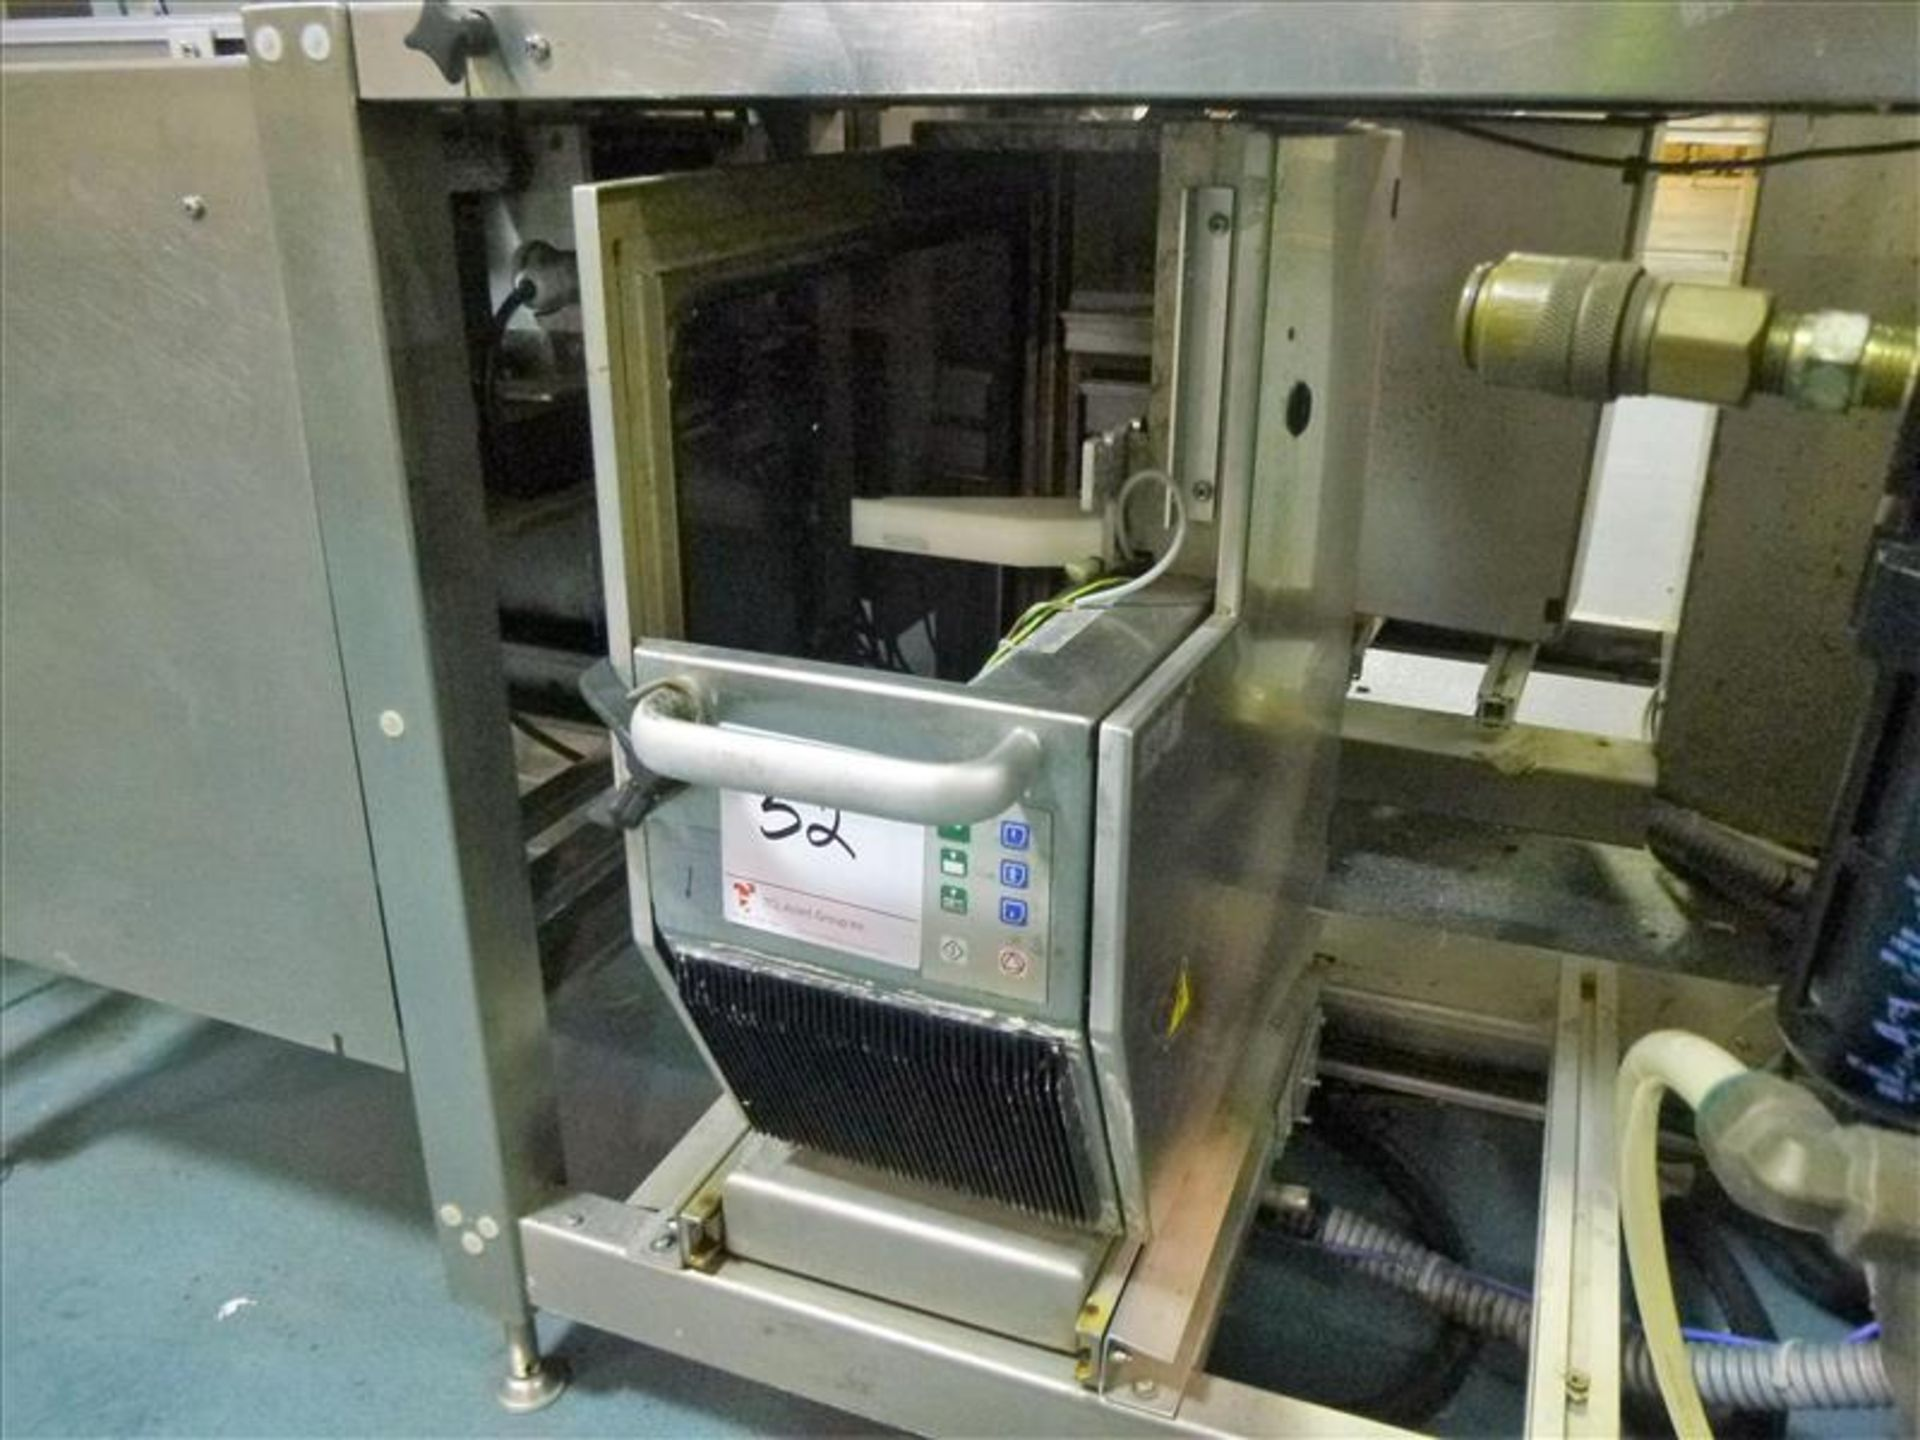 Lot 52 - Bizerba in-line check-weigher system (SLAVE2) w/ Bizerba GS label printer, ser. no. 1960591 (